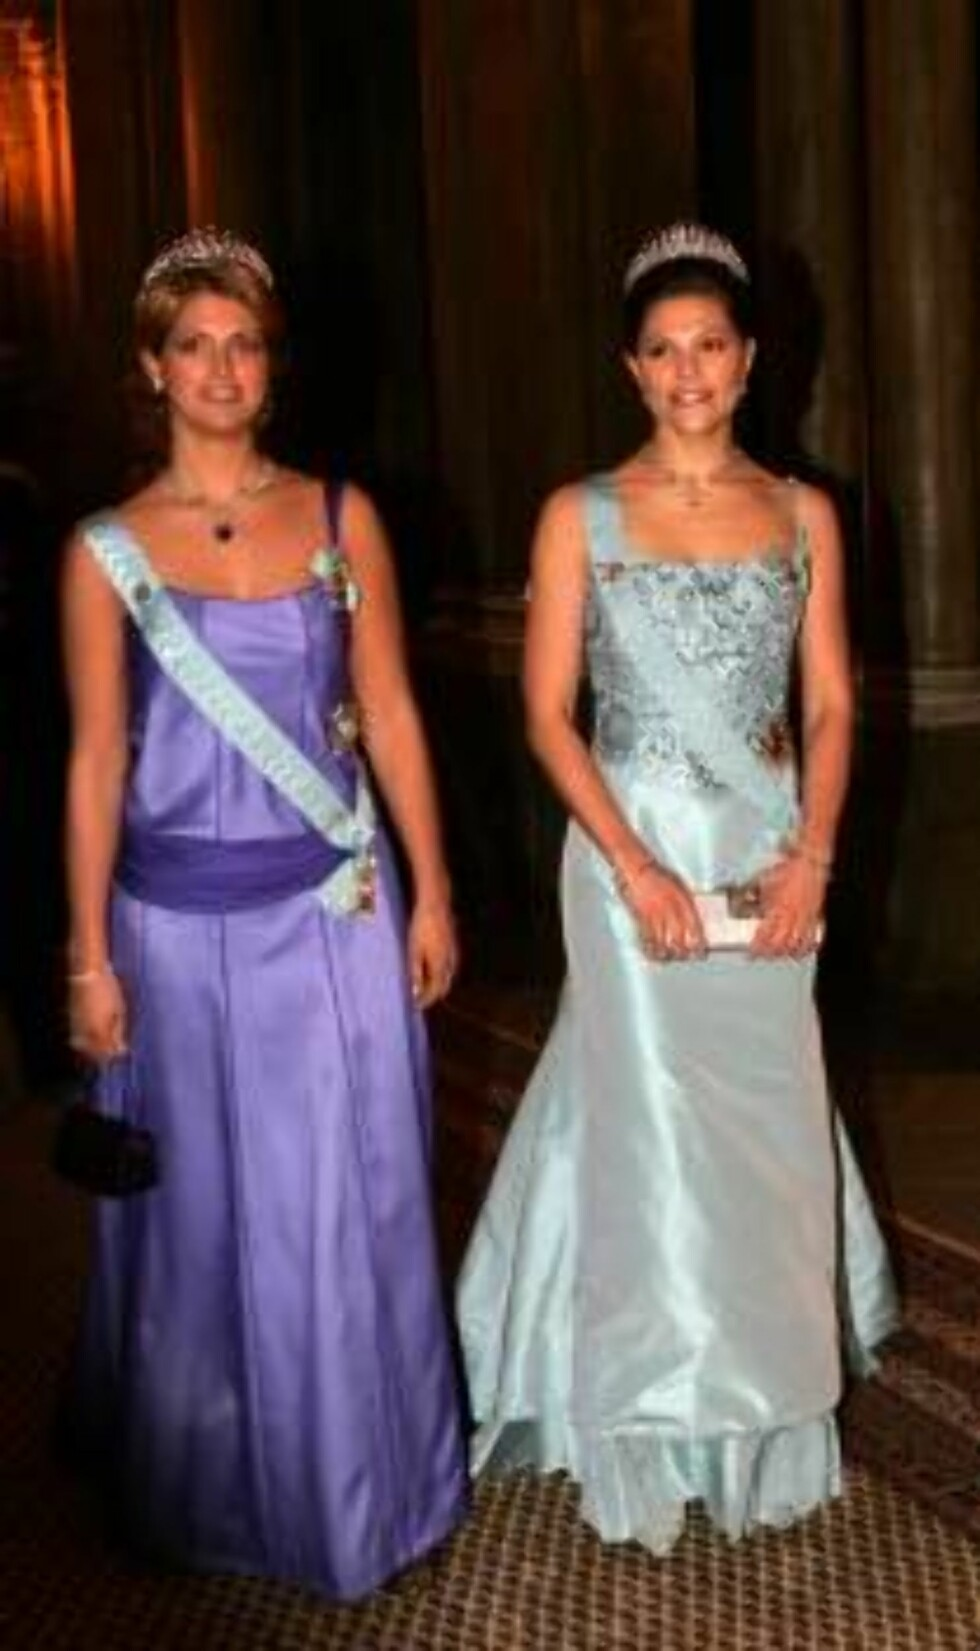 STOCKHOLM 2006-12-11.  The Nobel Prize 2006. King Carl XVI Gustaf and Queen Silvia of Sweden today hosted the traditional gala dinner in honour of the Nobel laureates at the Royal Palace, Stockholm.  Picture shows:  Princess Madeleine and Crown princess V Foto: Stella Pictures